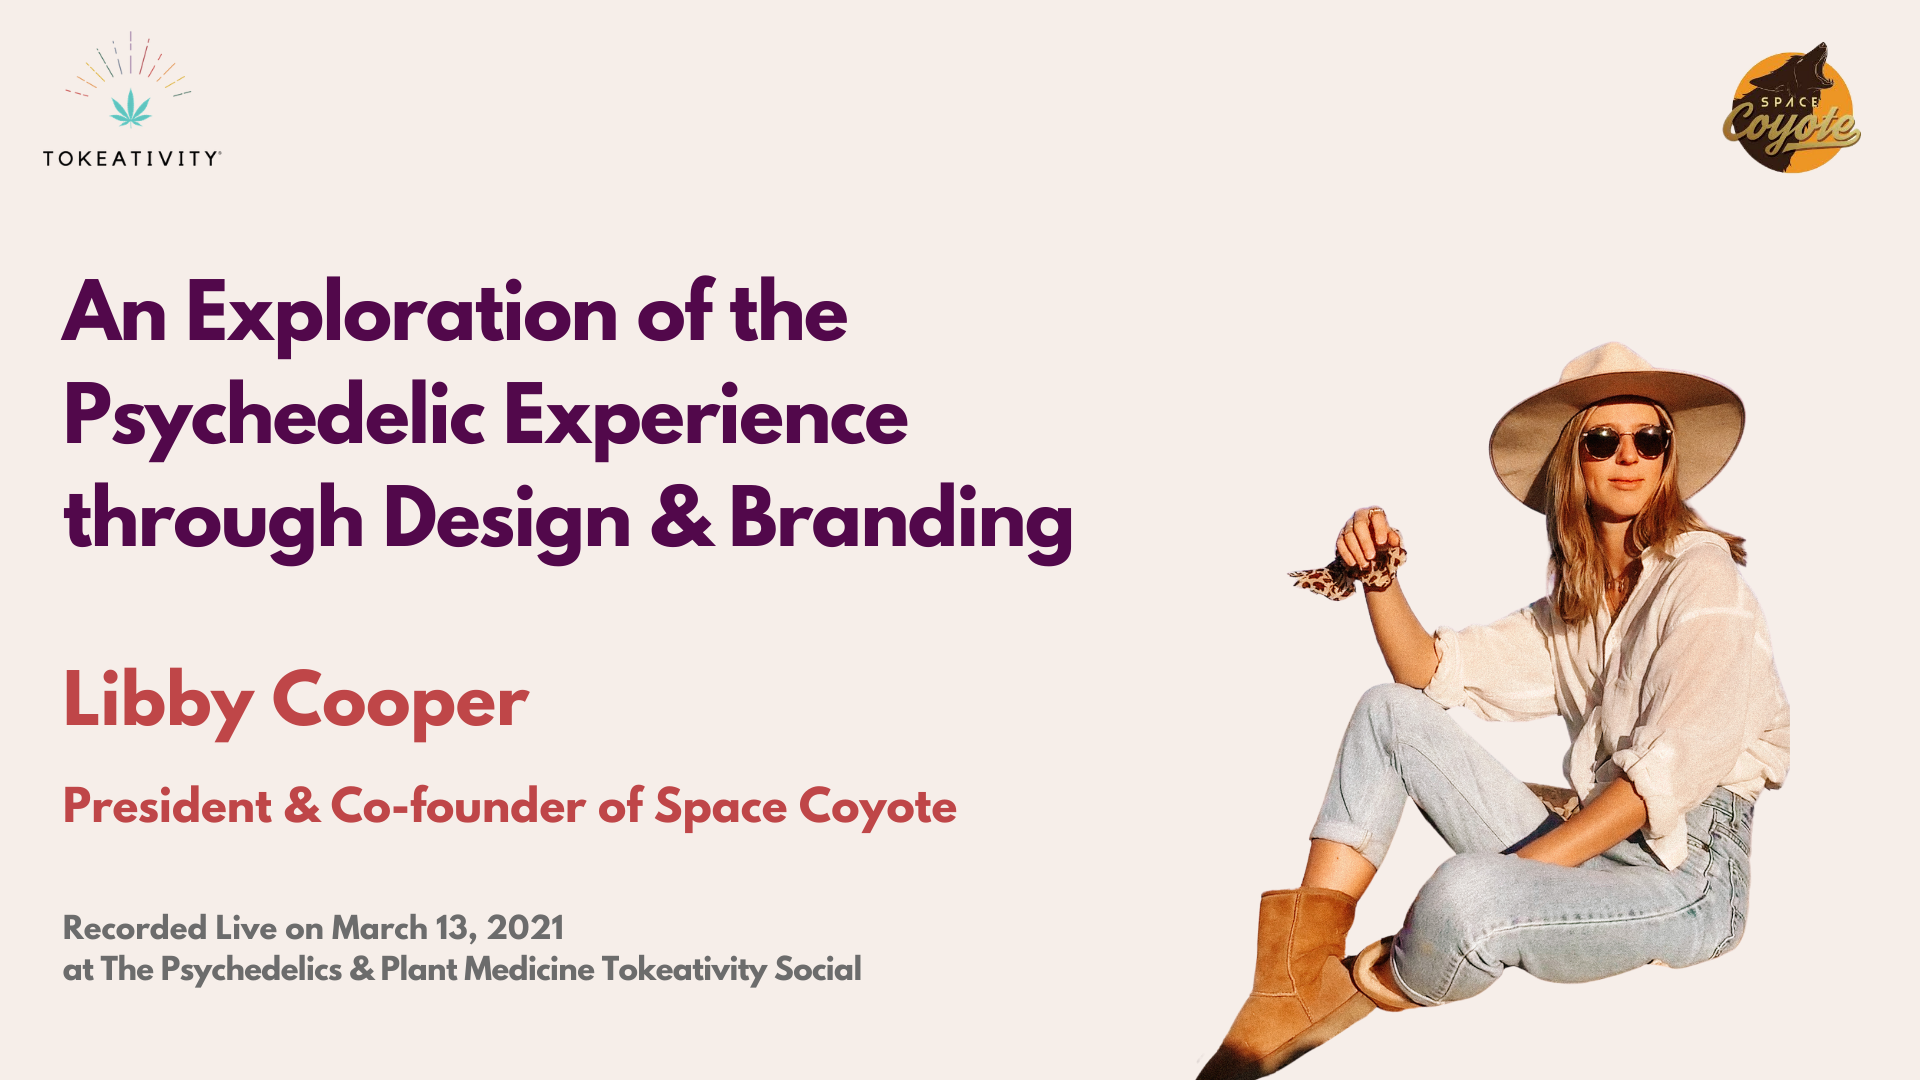 Libby Cooper President & Co-founder of Space Coyote